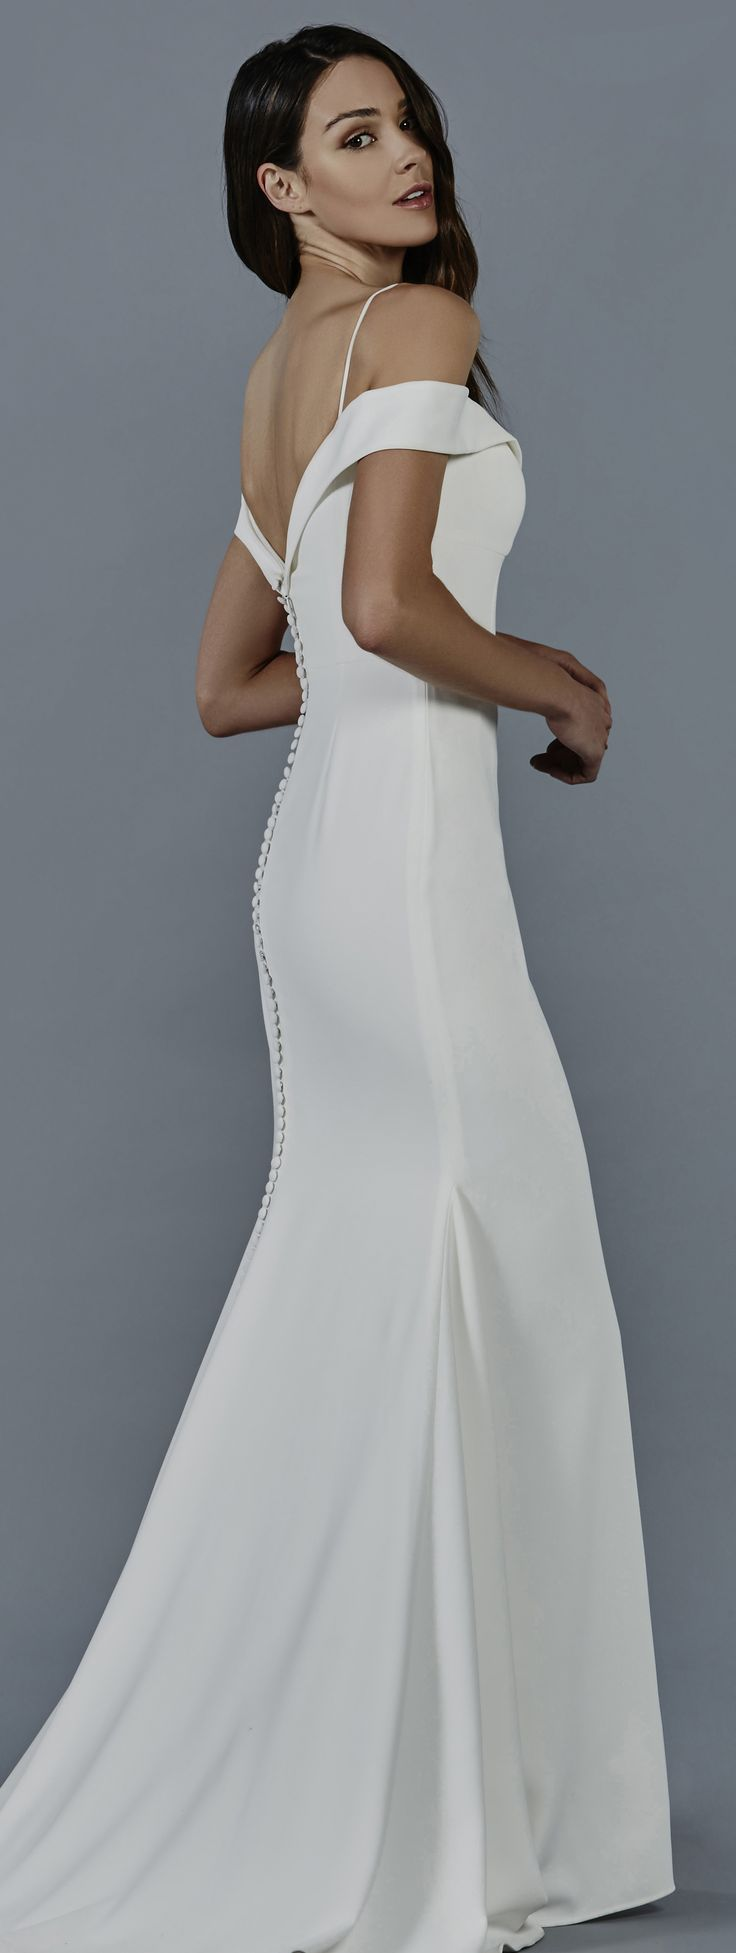 127 best Hochzeit images on Pinterest | Weddings, Bridal gowns and ...